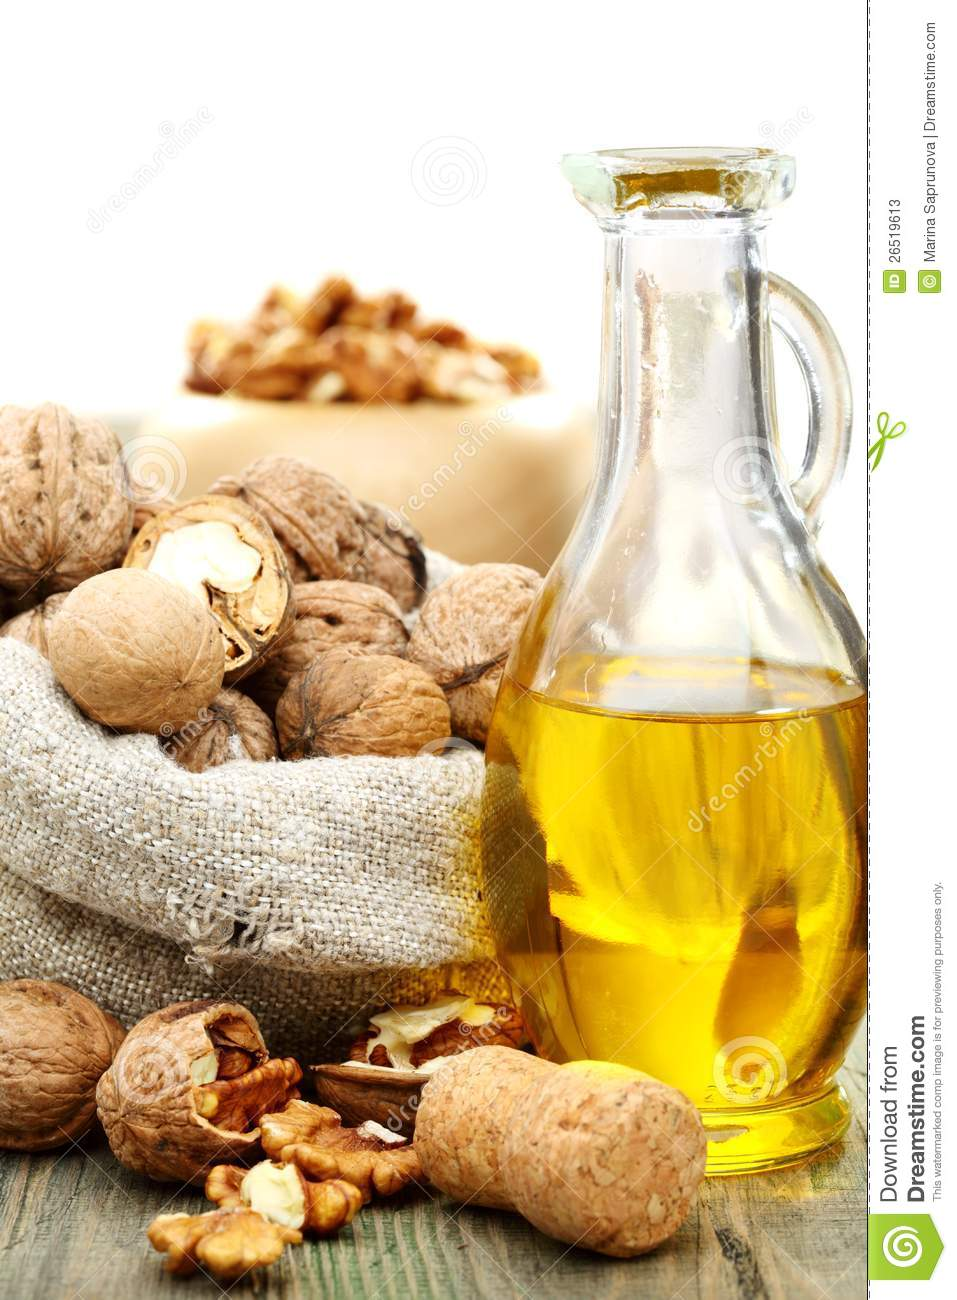 Walnut Oil And Nuts In A Bag Stock Photos Image 26519613